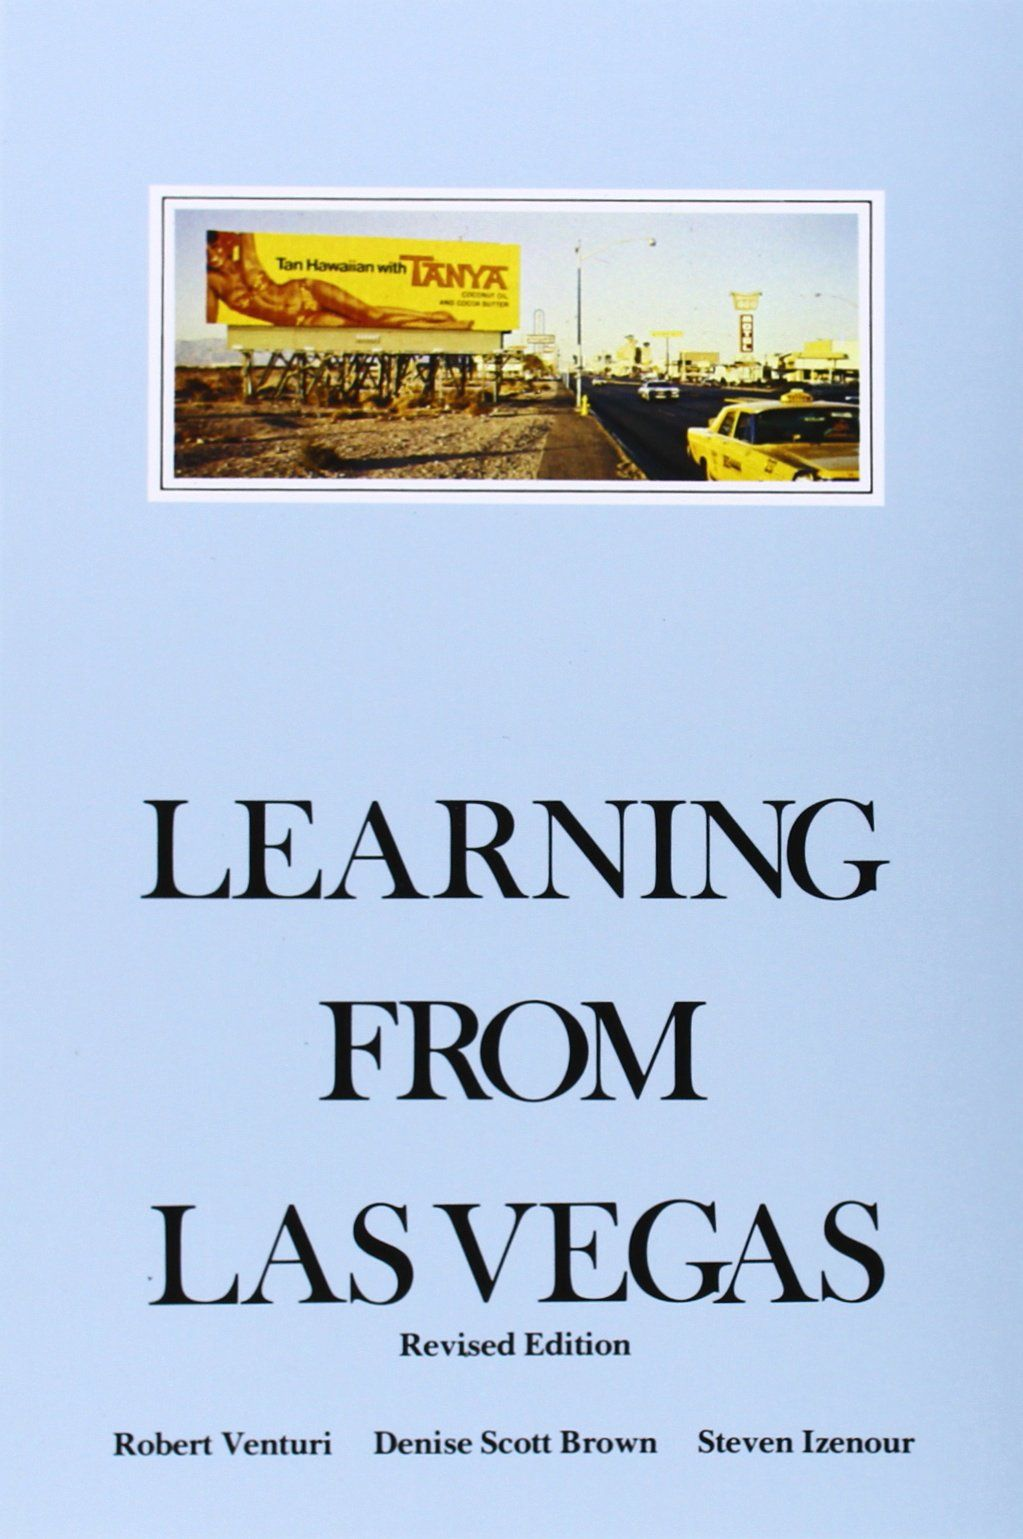 Stevenphan s ideas an ideabook by stevenphan - Learning From Las Vegas Revised Edition The Forgotten Symbolism Of Architectural Form Robert